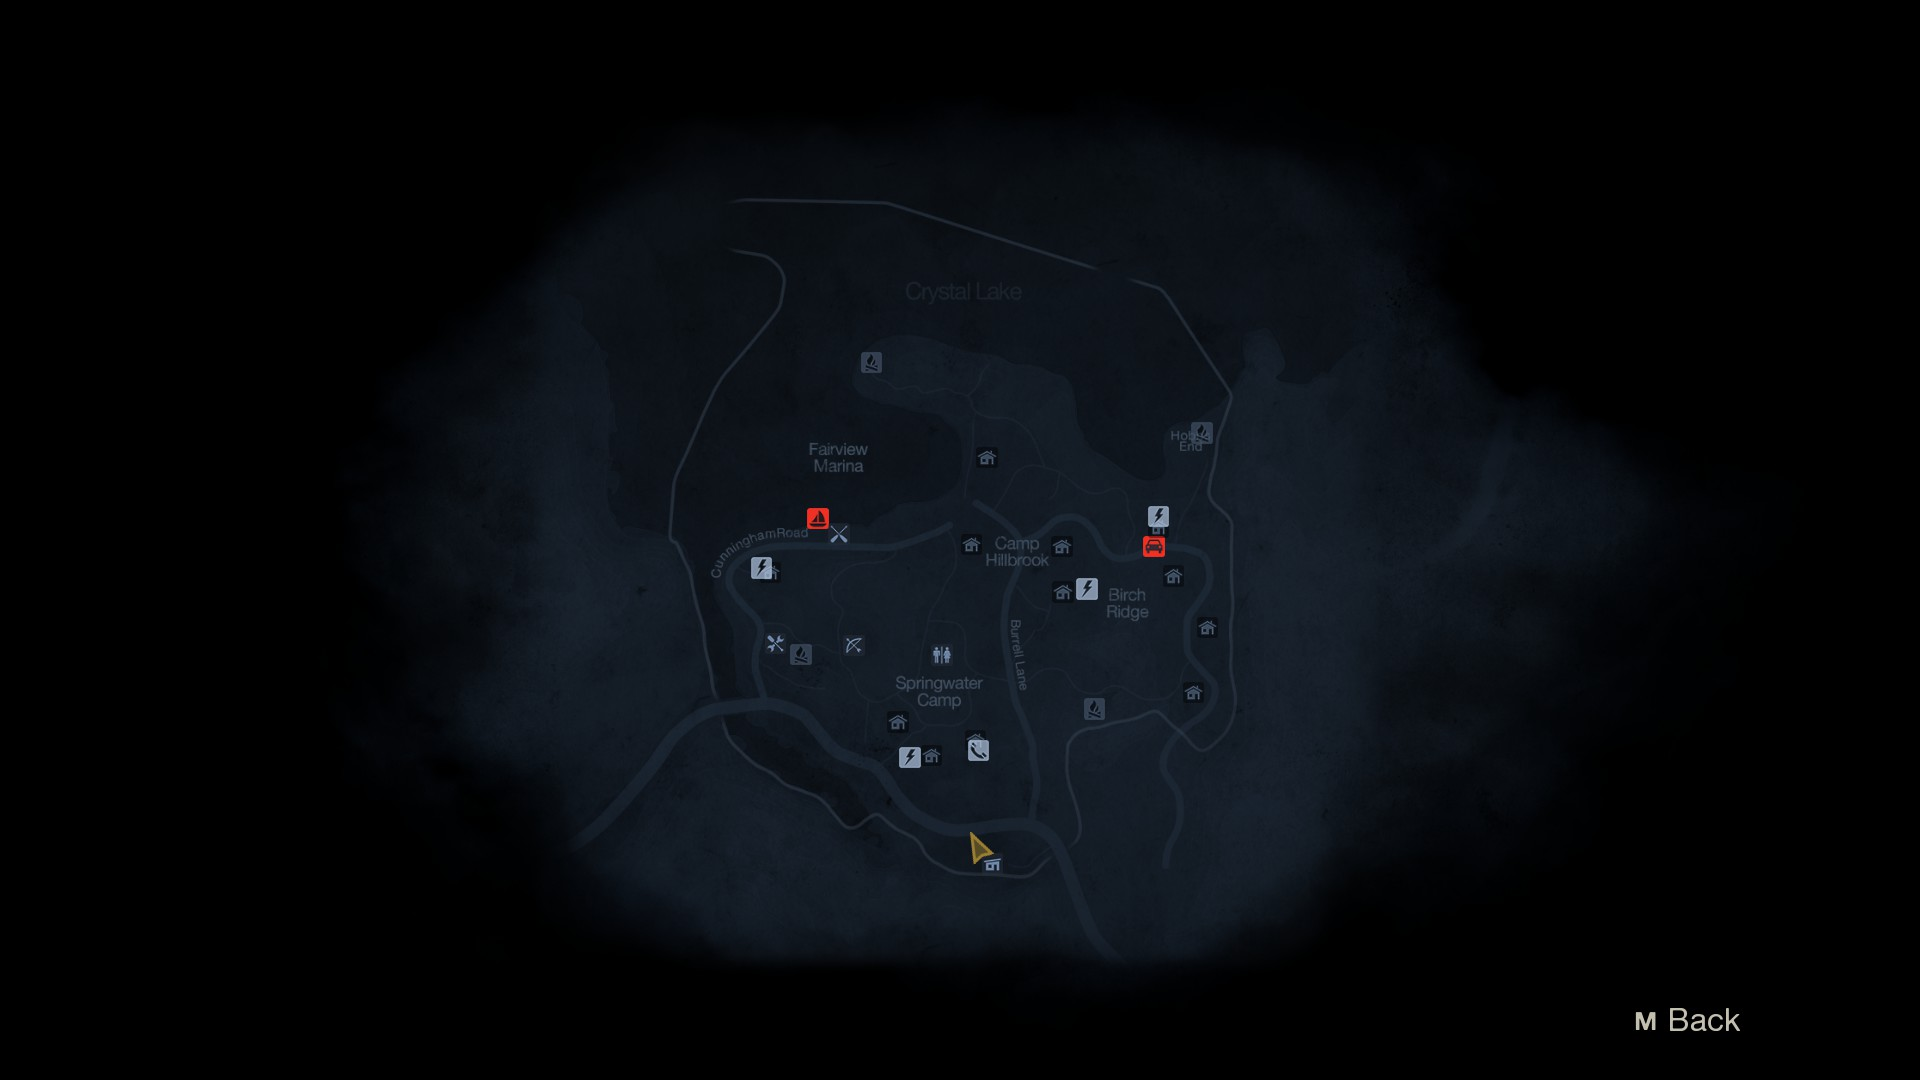 The Morph ability lets Jason teleport wherever he wants around the map.